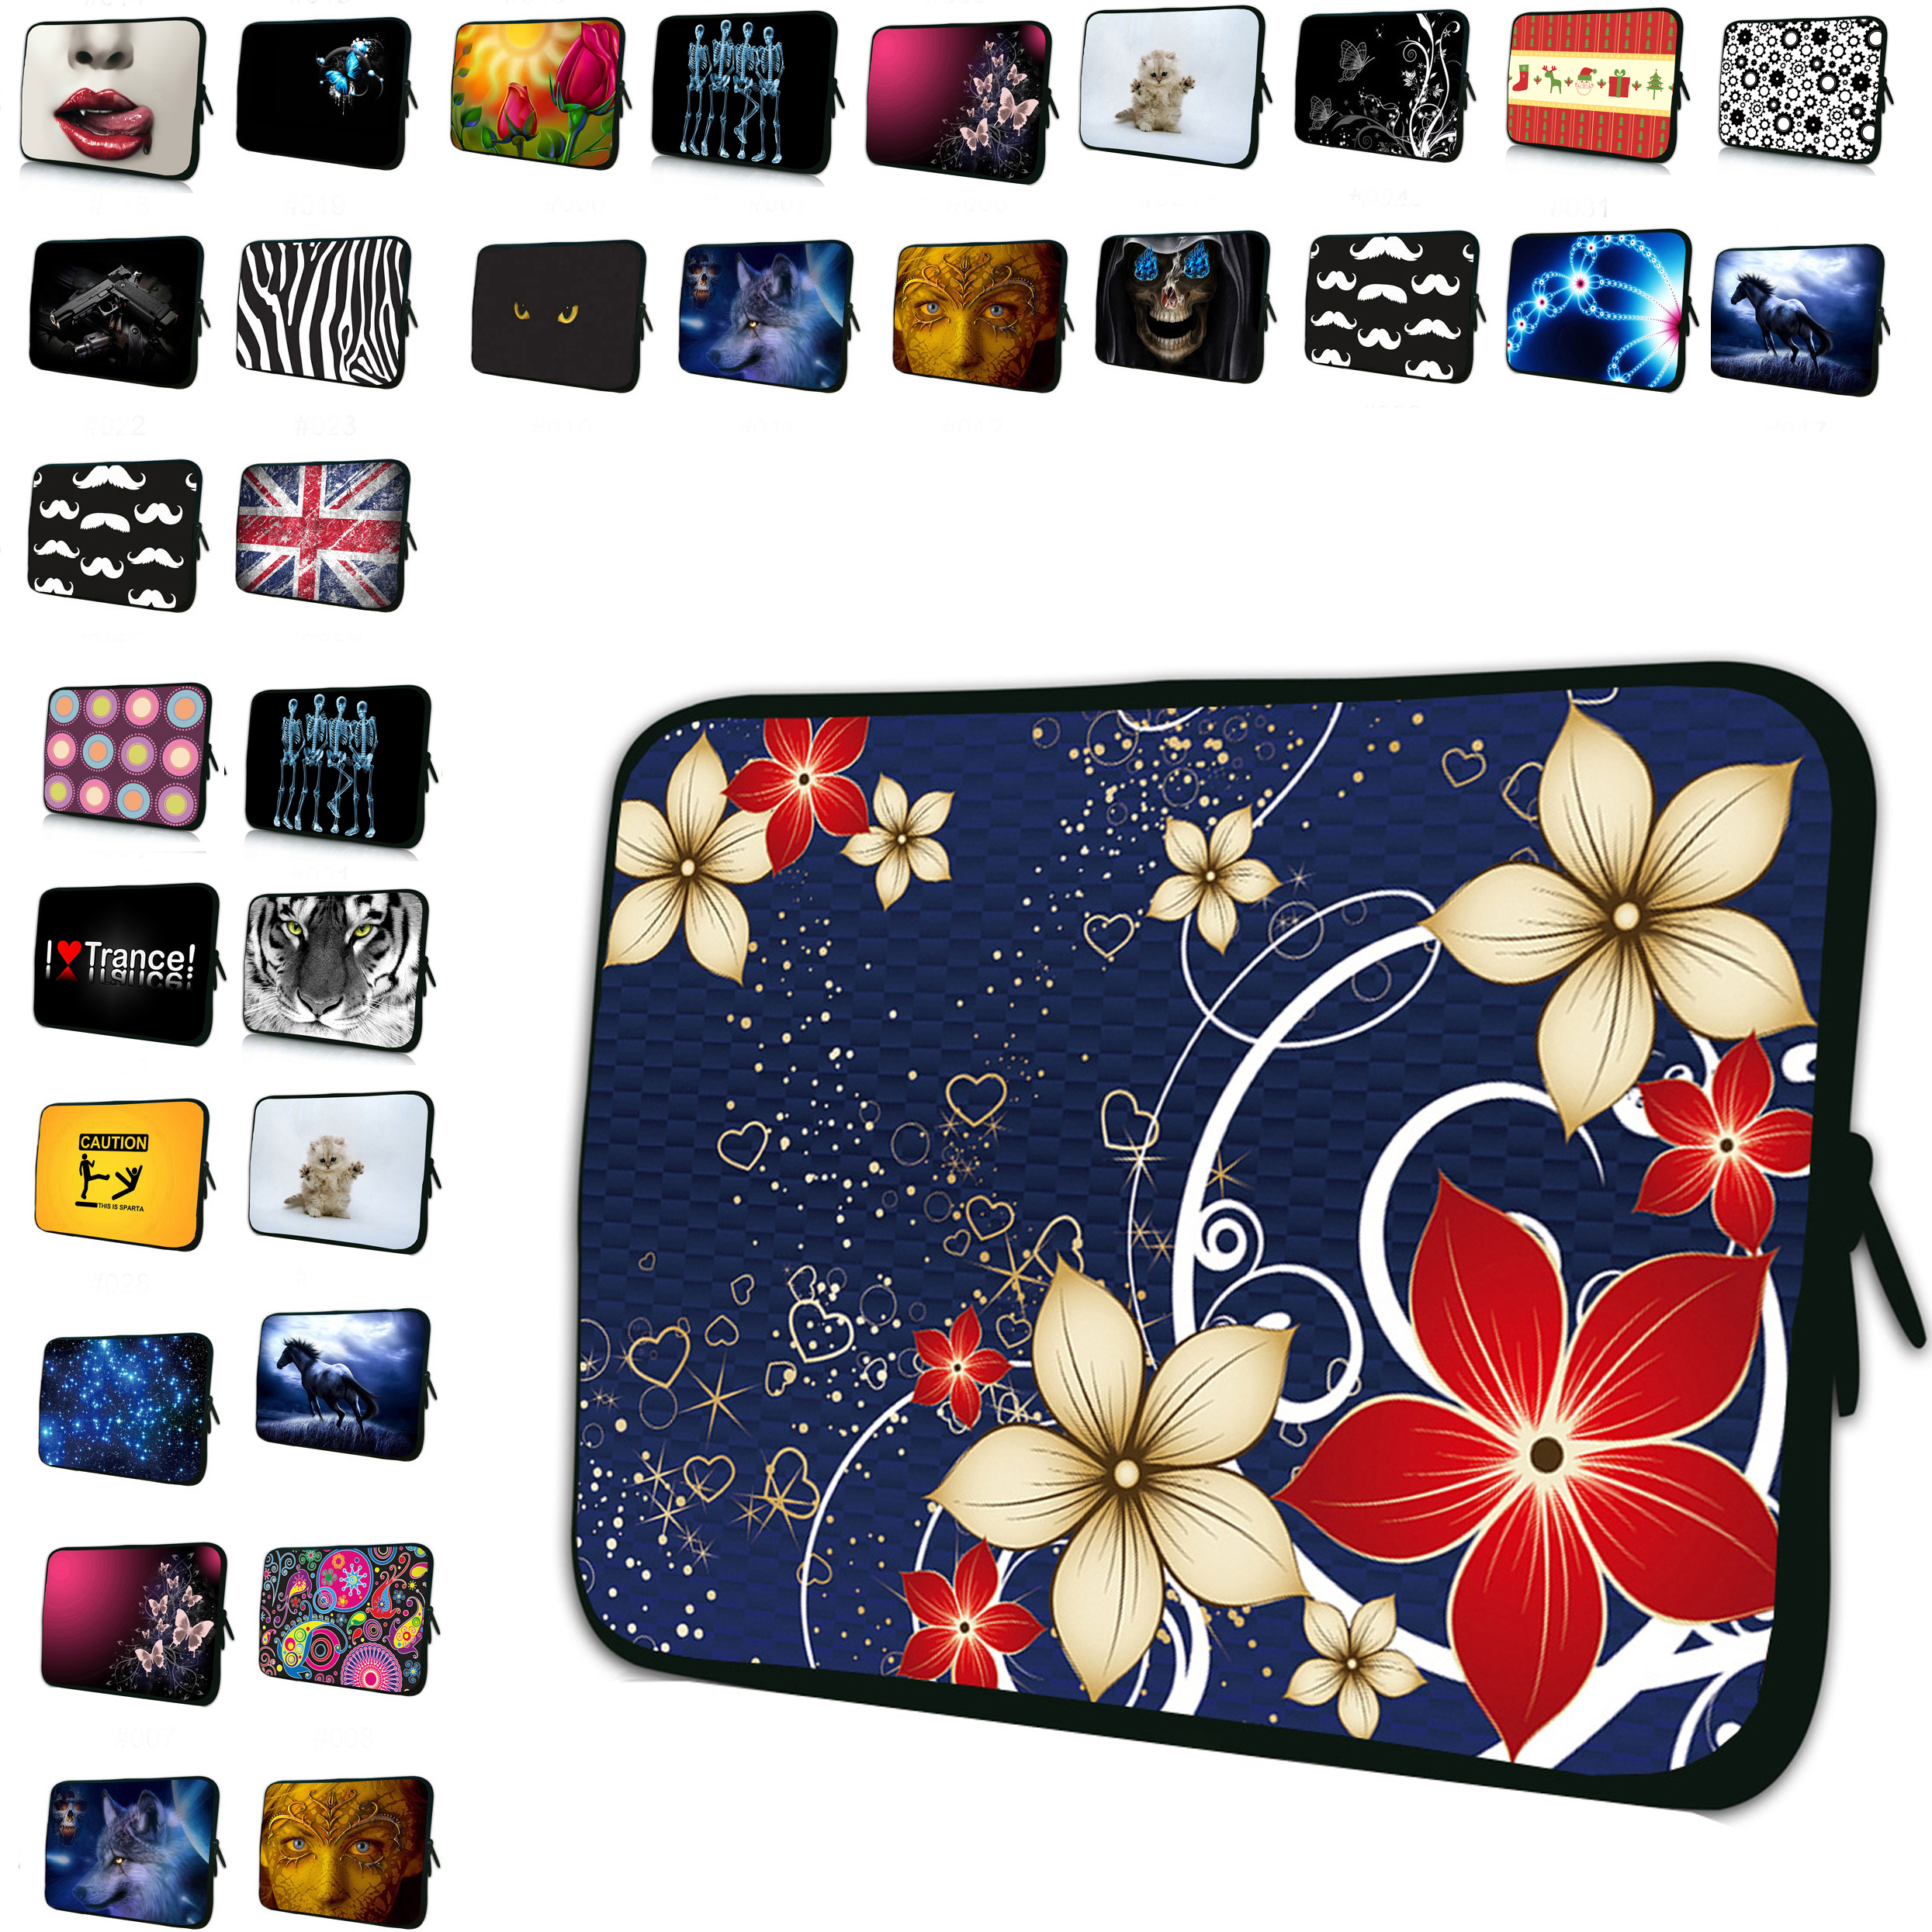 Stylish Flowrs Women Portable 7 10 12 13 14 15 17 16 inch Laptop Notebook Sleeve Bag Zipper Cover Cases Pouch Protector Bolsas